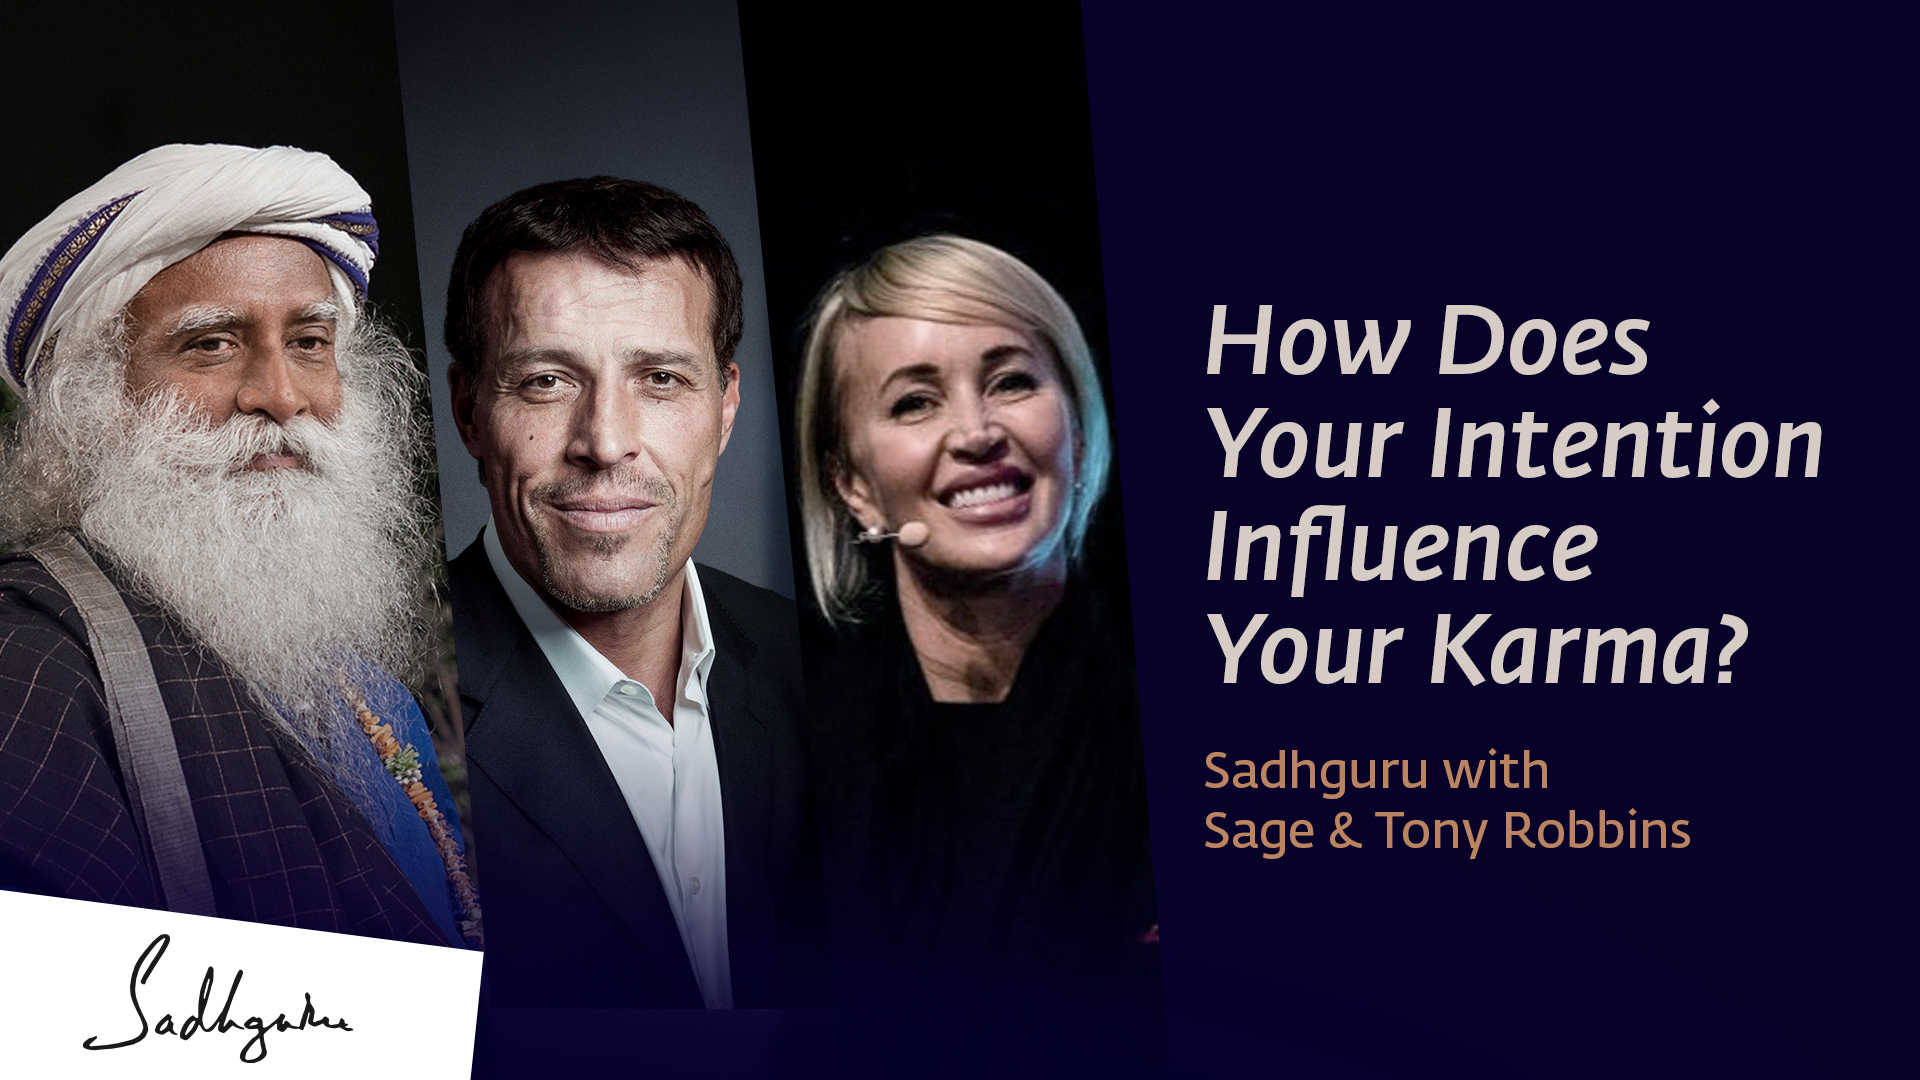 How Does Your Intention Influence Your Karma?